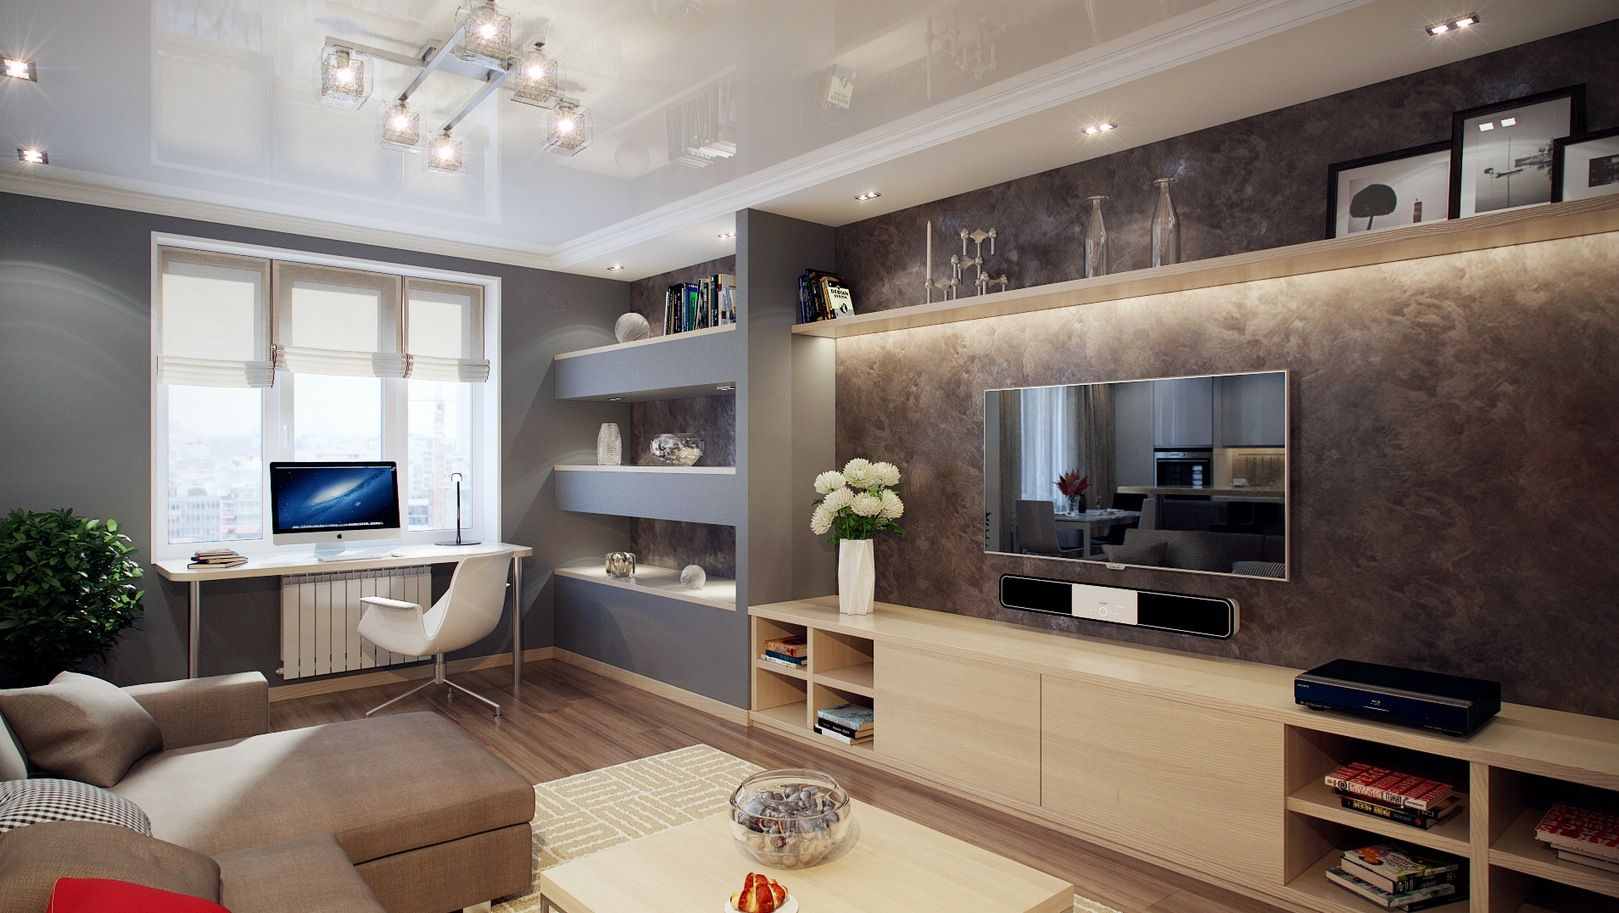 top modern contemporary interior design. Amazing Cool Interior Design Ideas  Inspiring With Awesome Wall Shelving And Cabinetry Modern Tv Unit A I like how the top lights are still there even thought wiring